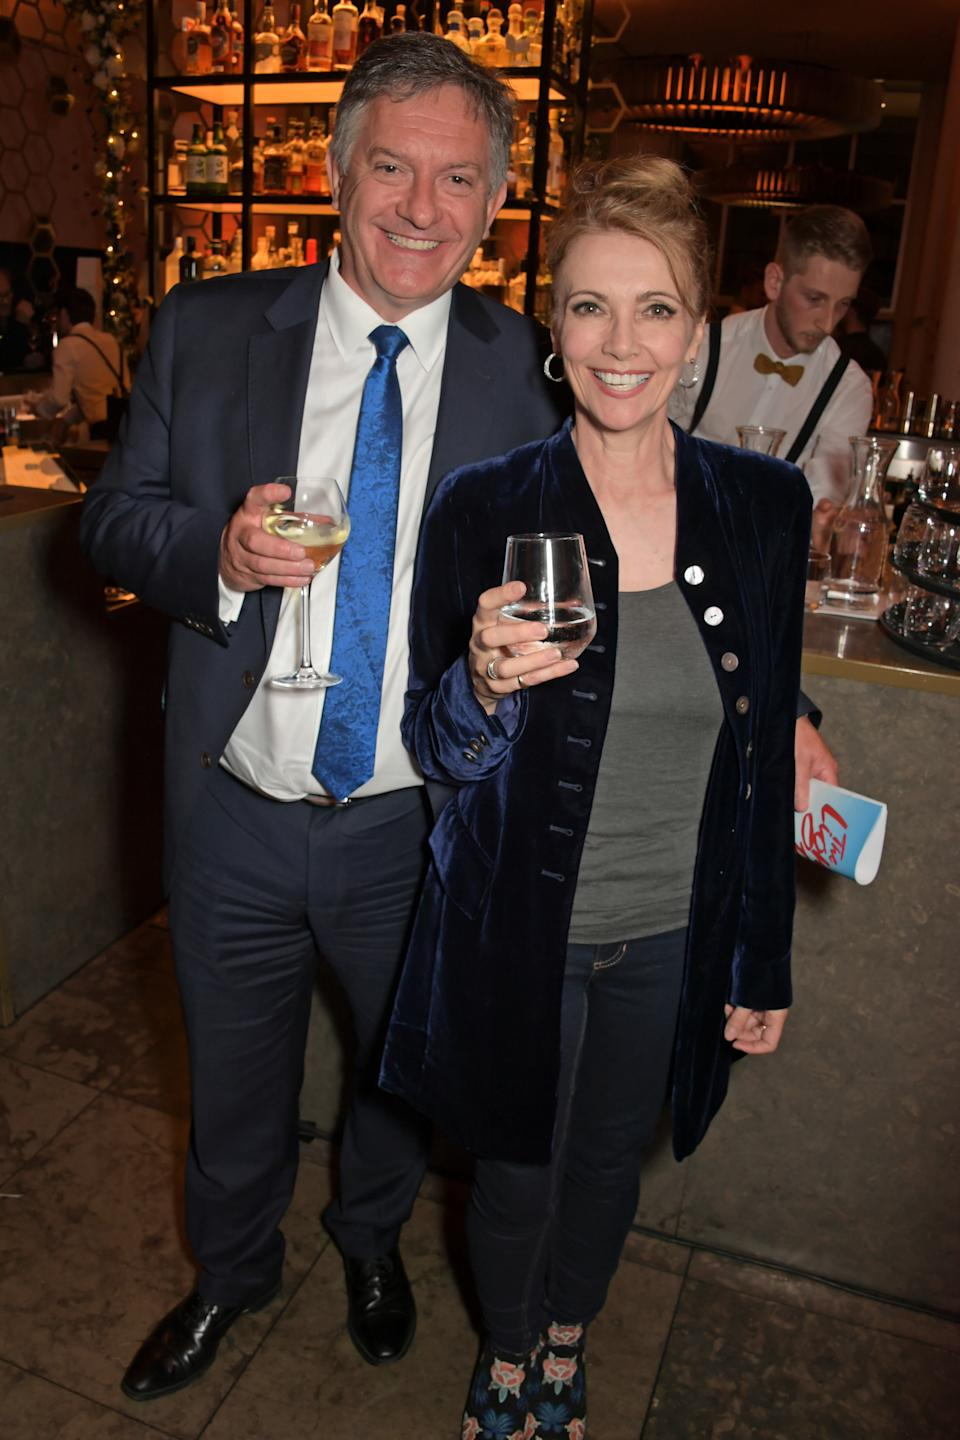 Simon McCoy and Emma Samms attend the press night after party for